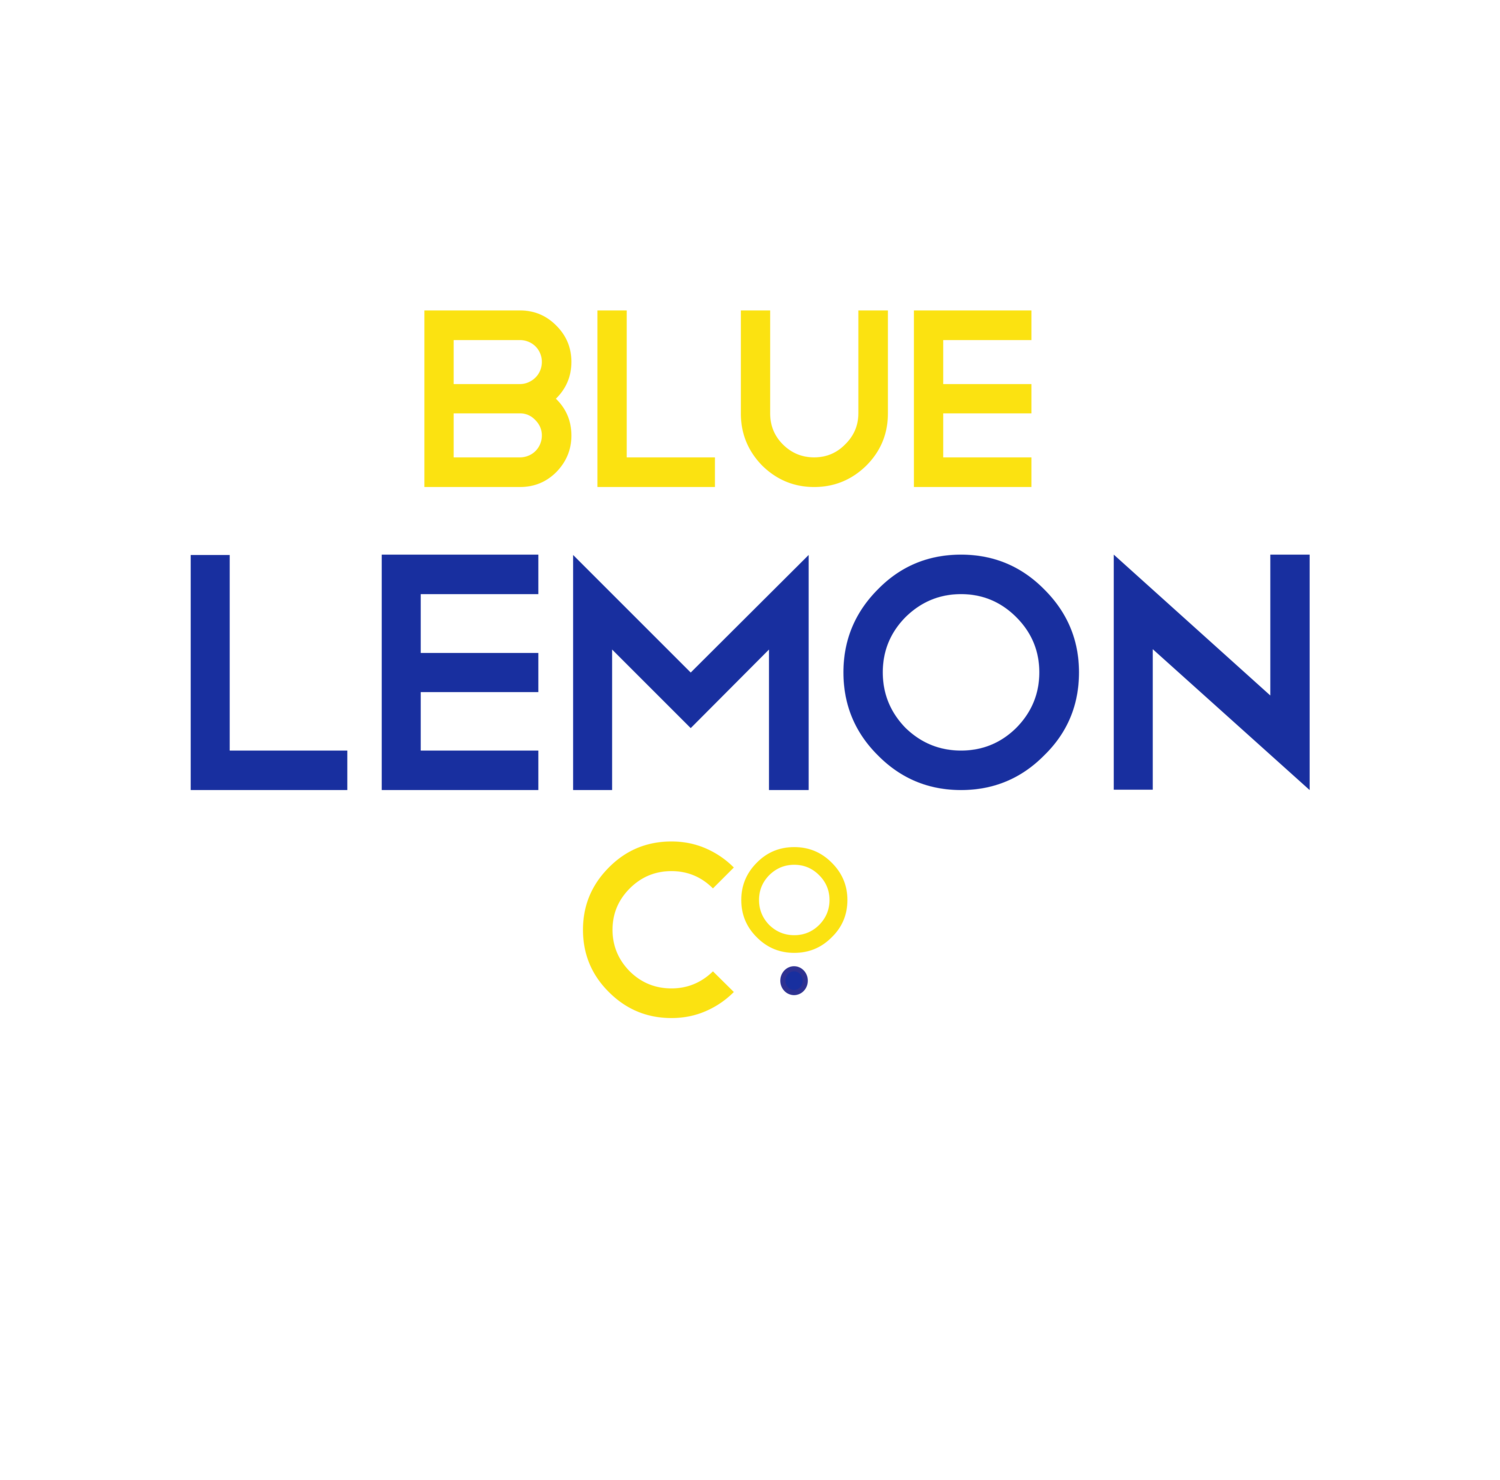 Blue Lemon Co.